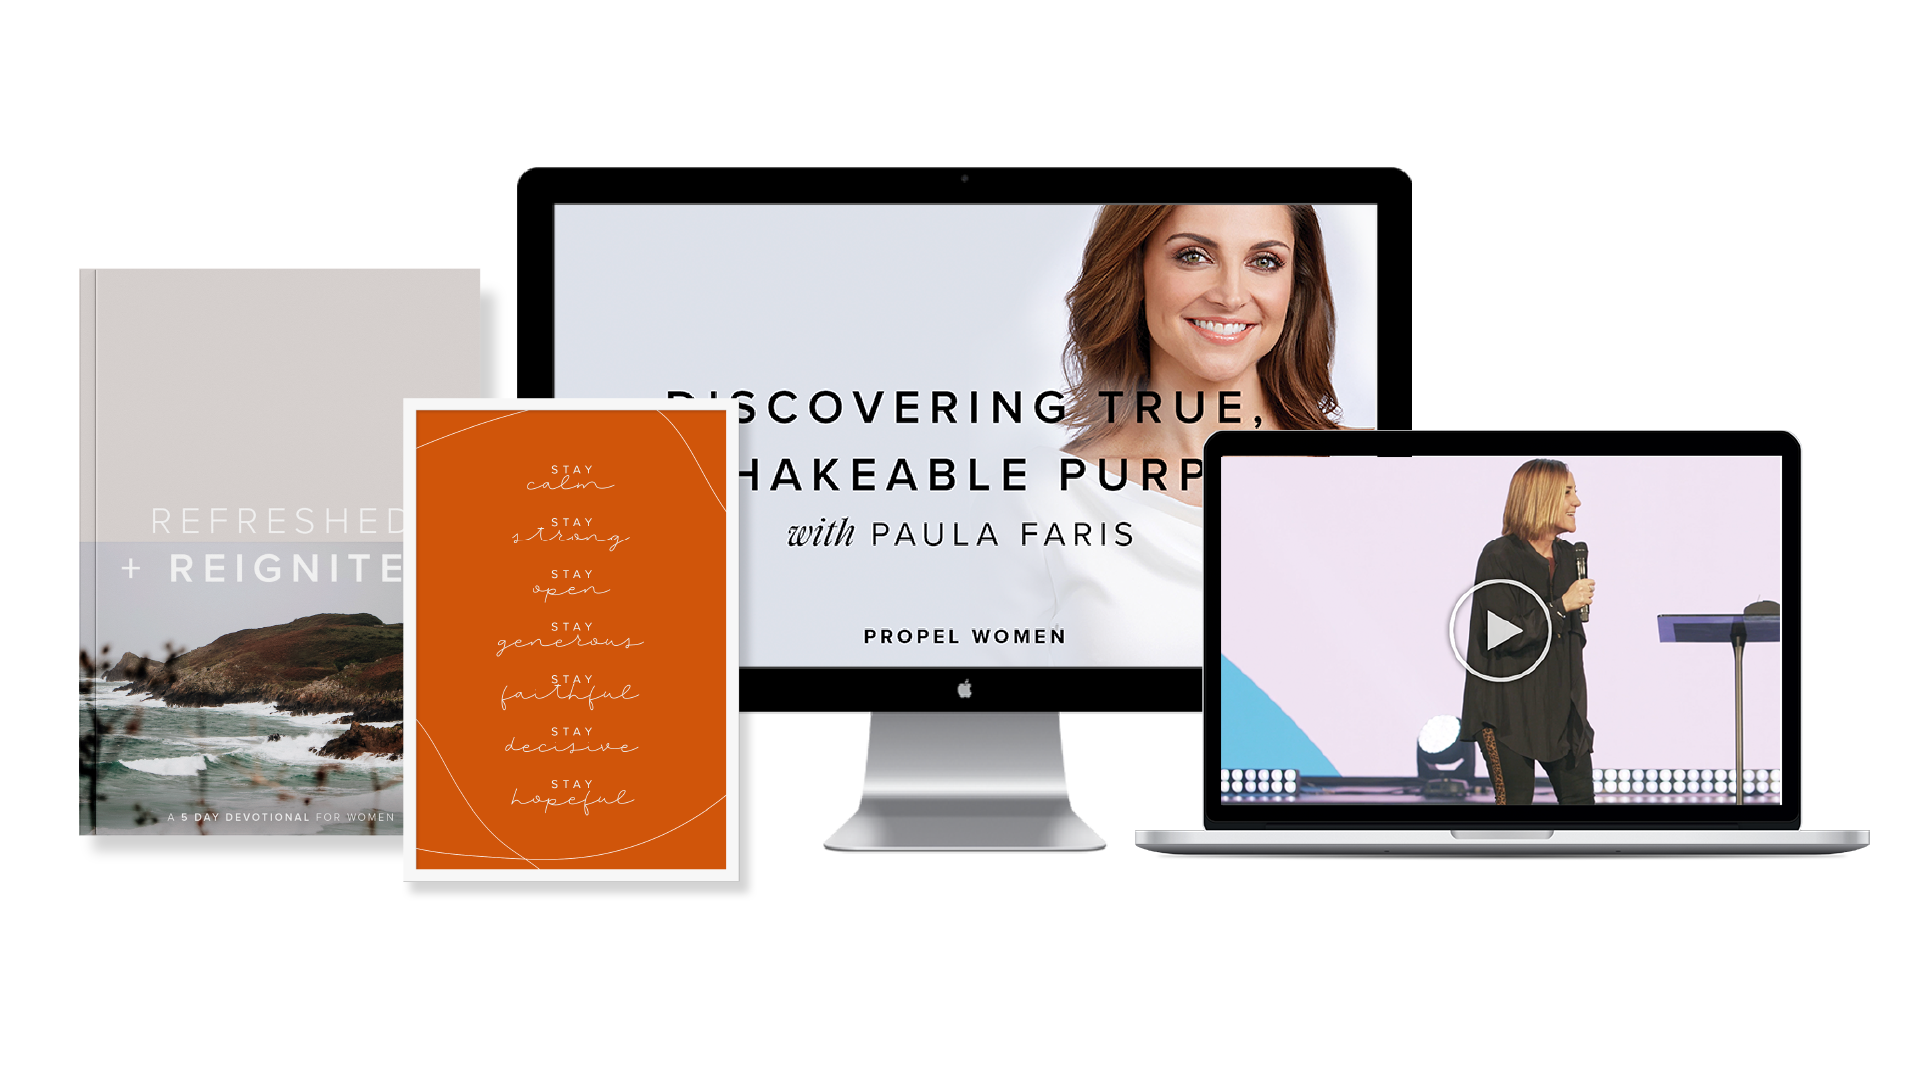 Bundle of Propel Devotional, Downloads, Videos, & online resources, digital wallpaper